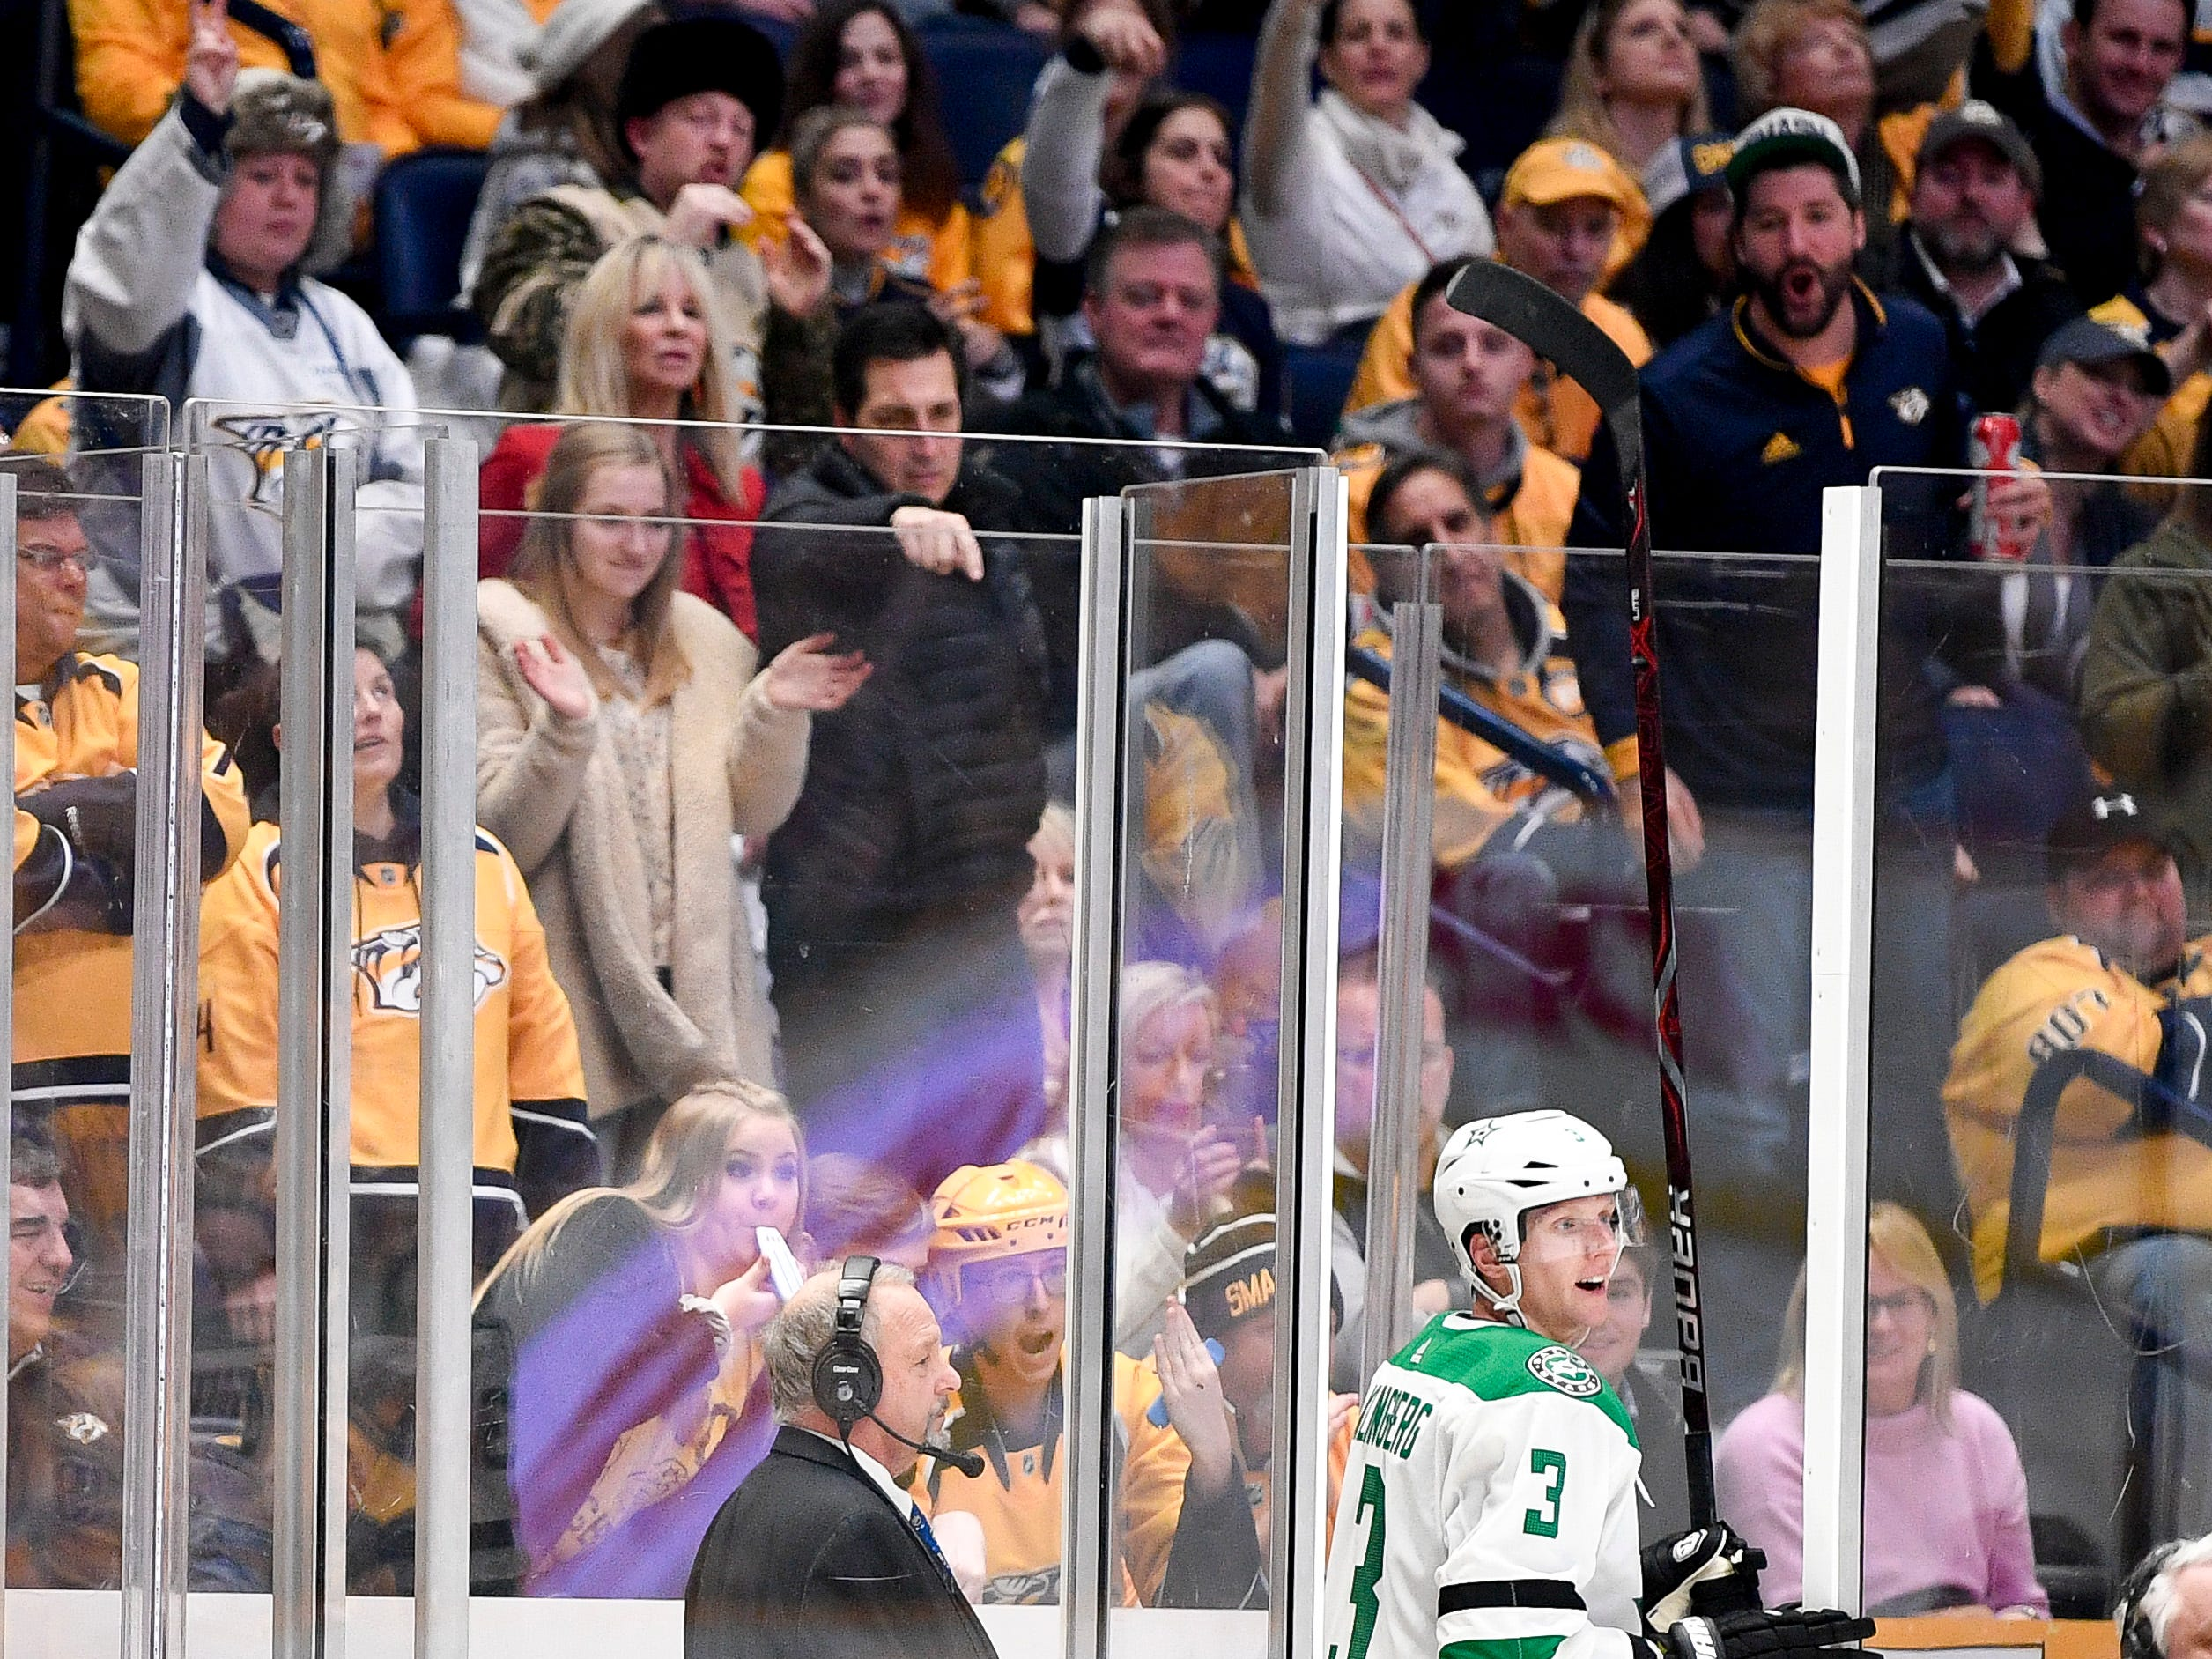 Nashville Predators fans taunt Dallas Stars defenseman John Klingberg (3) as he enters the penalty box for tripping during the third period at Bridgestone Arena in Nashville, Tenn., Saturday, Feb. 2, 2019.